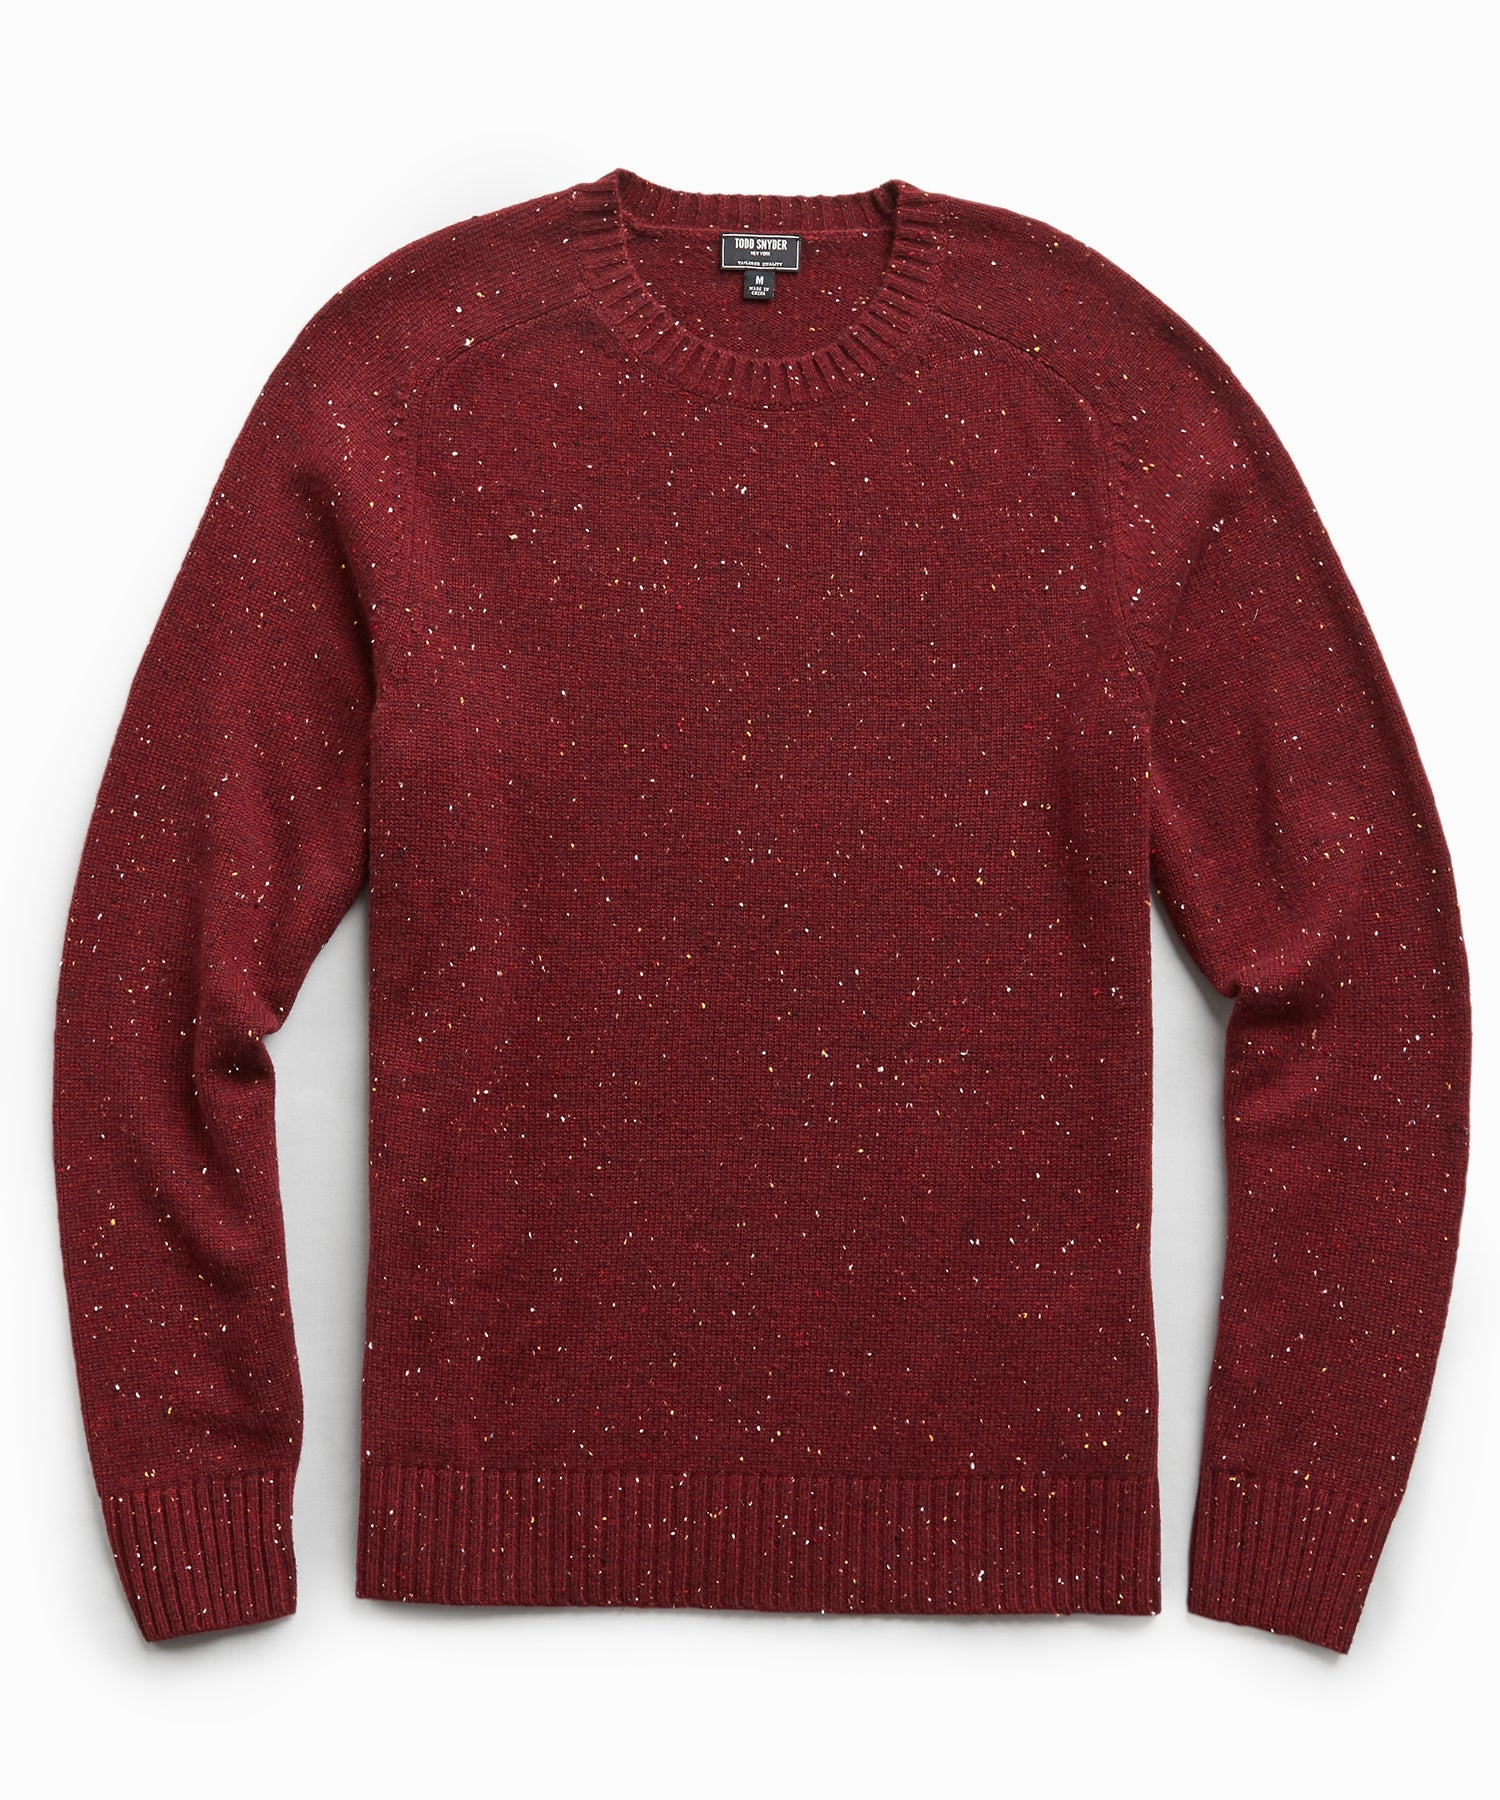 Cashmere Donegal Crew in Merlot